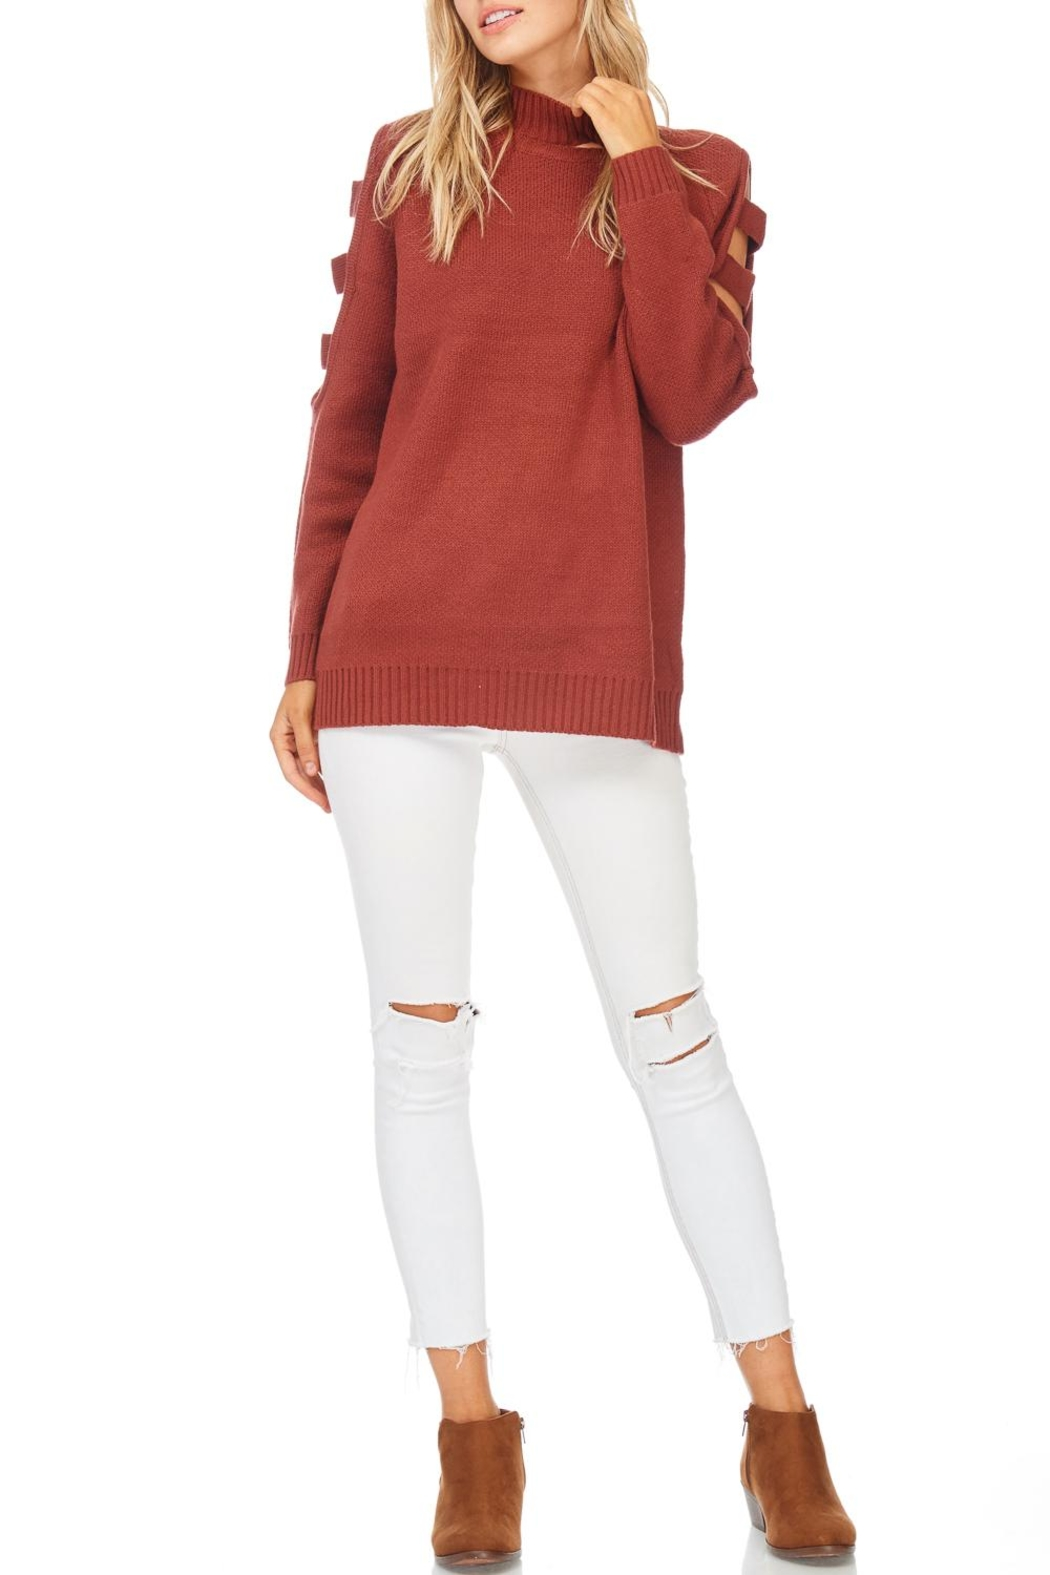 LoveRiche Brick Cut-Out Sweater - Back Cropped Image